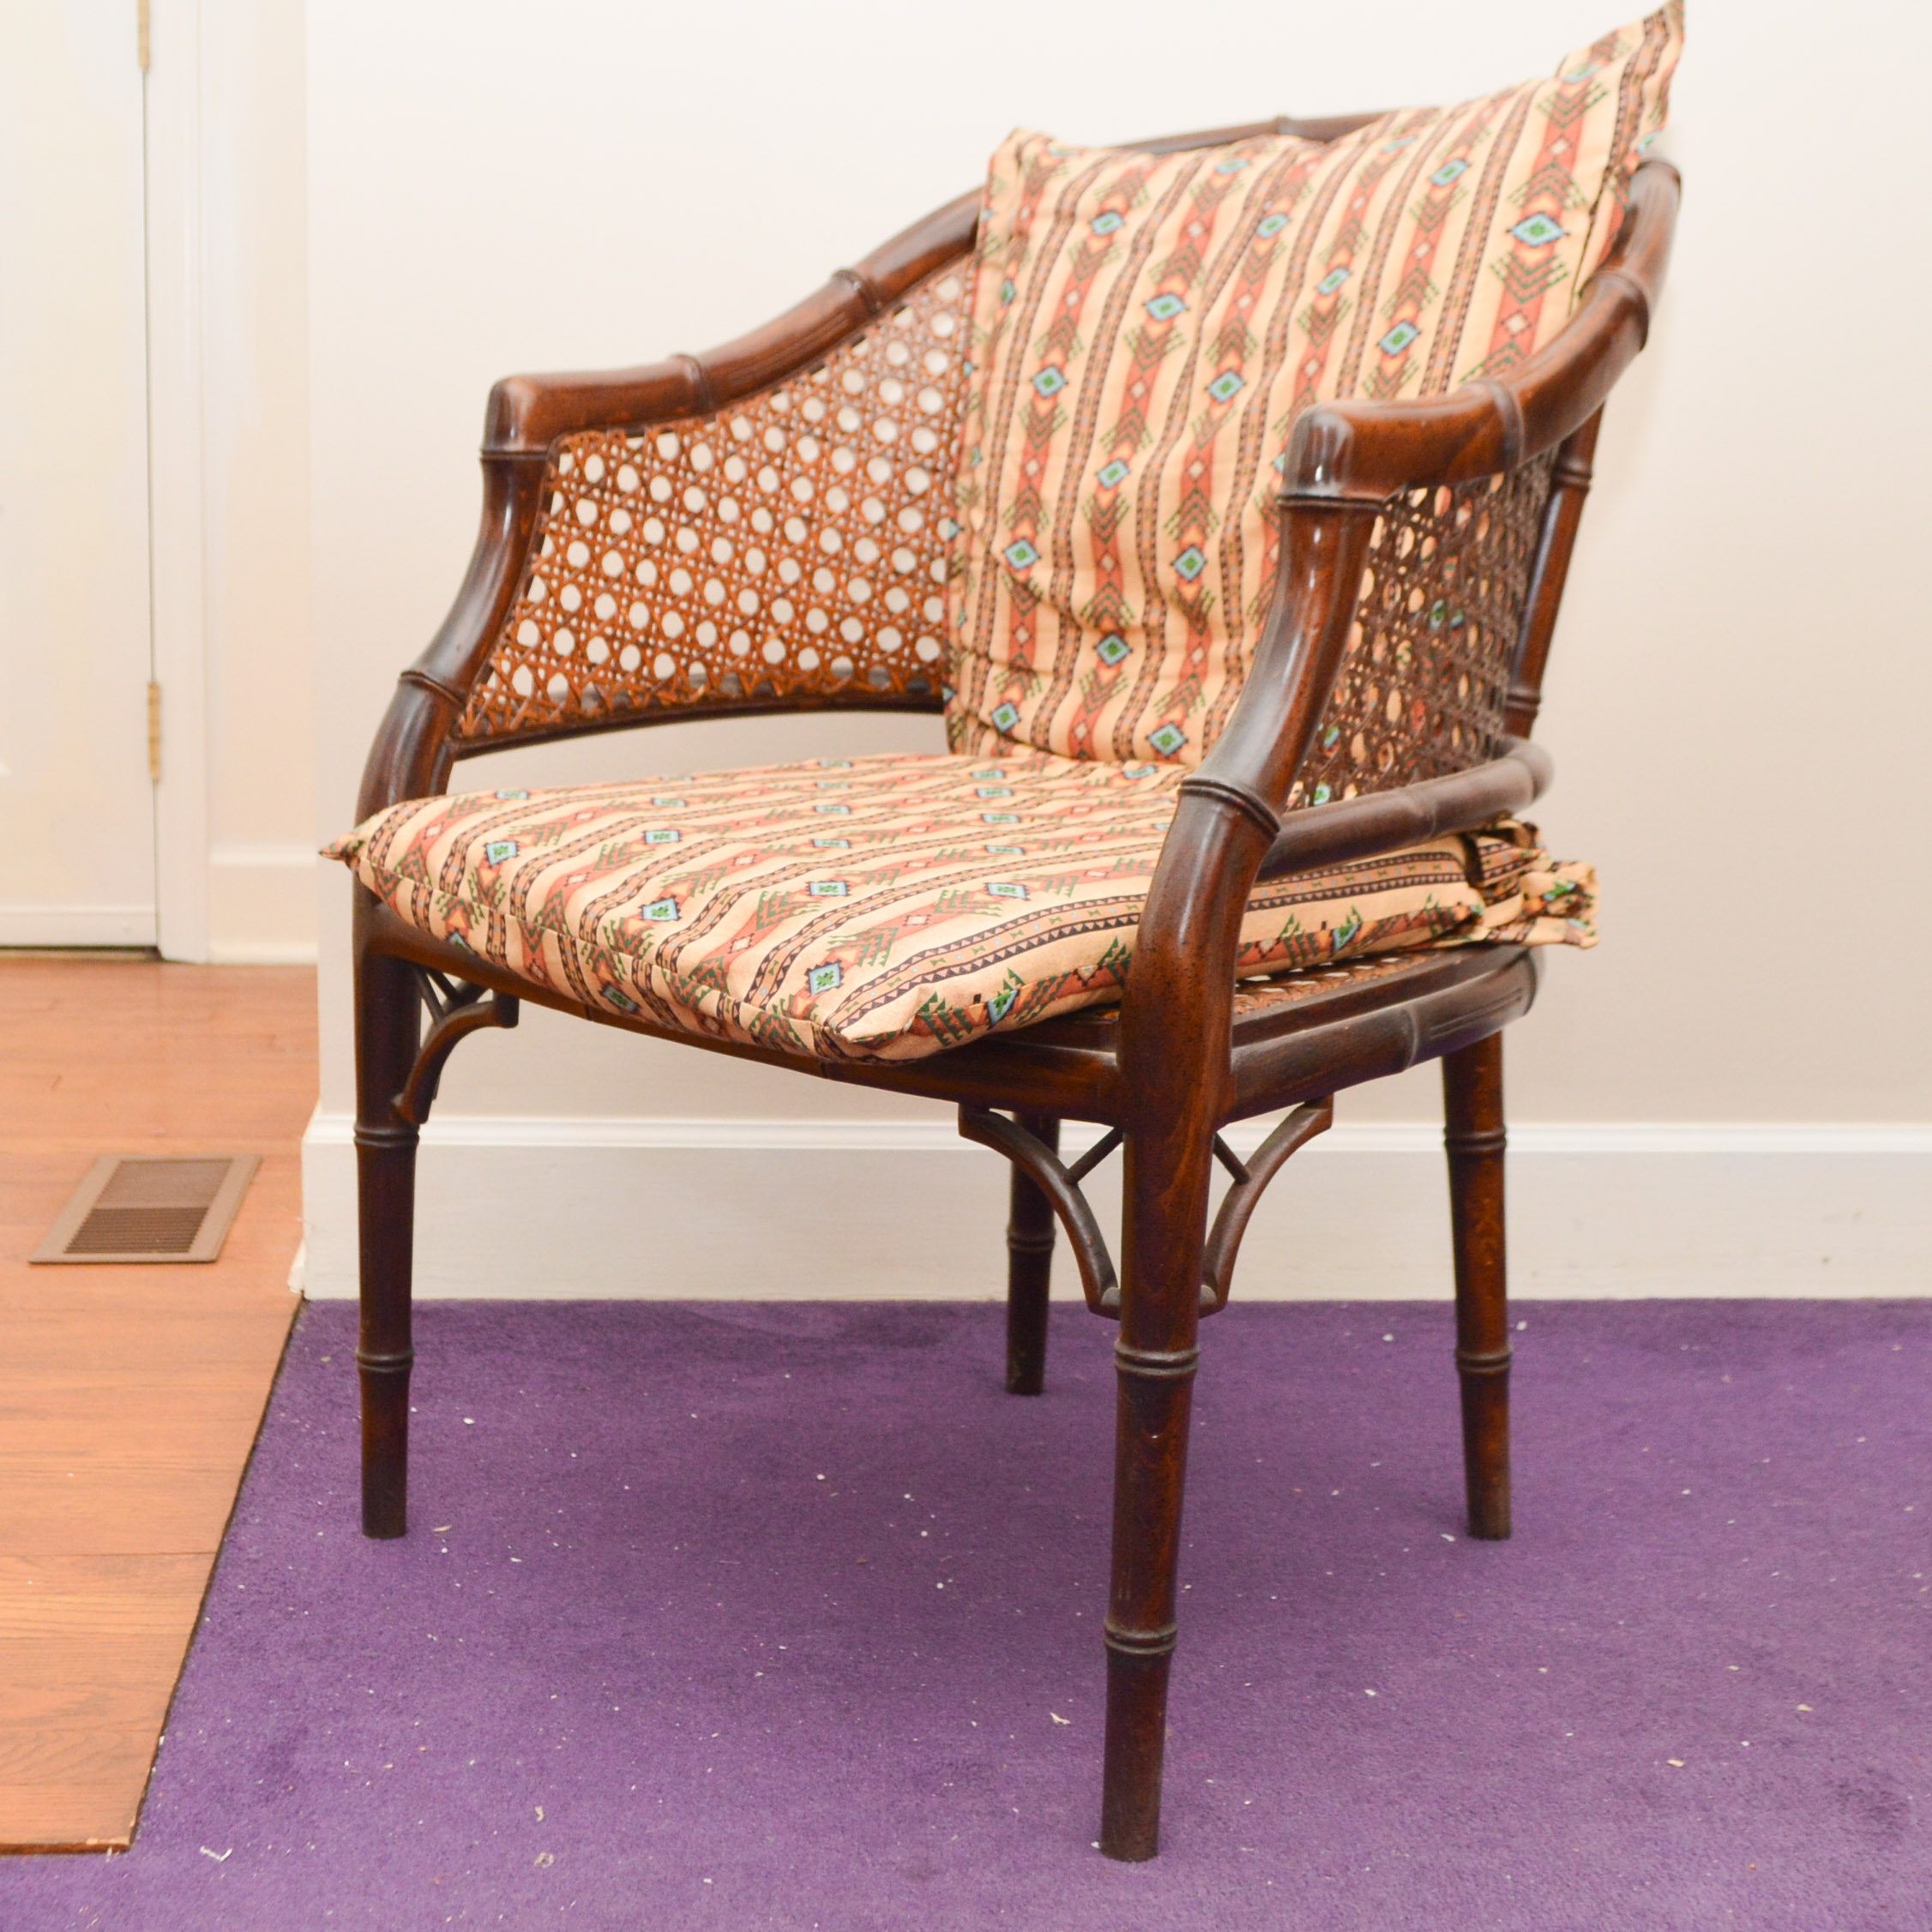 Rattan and Wood Accent Chair